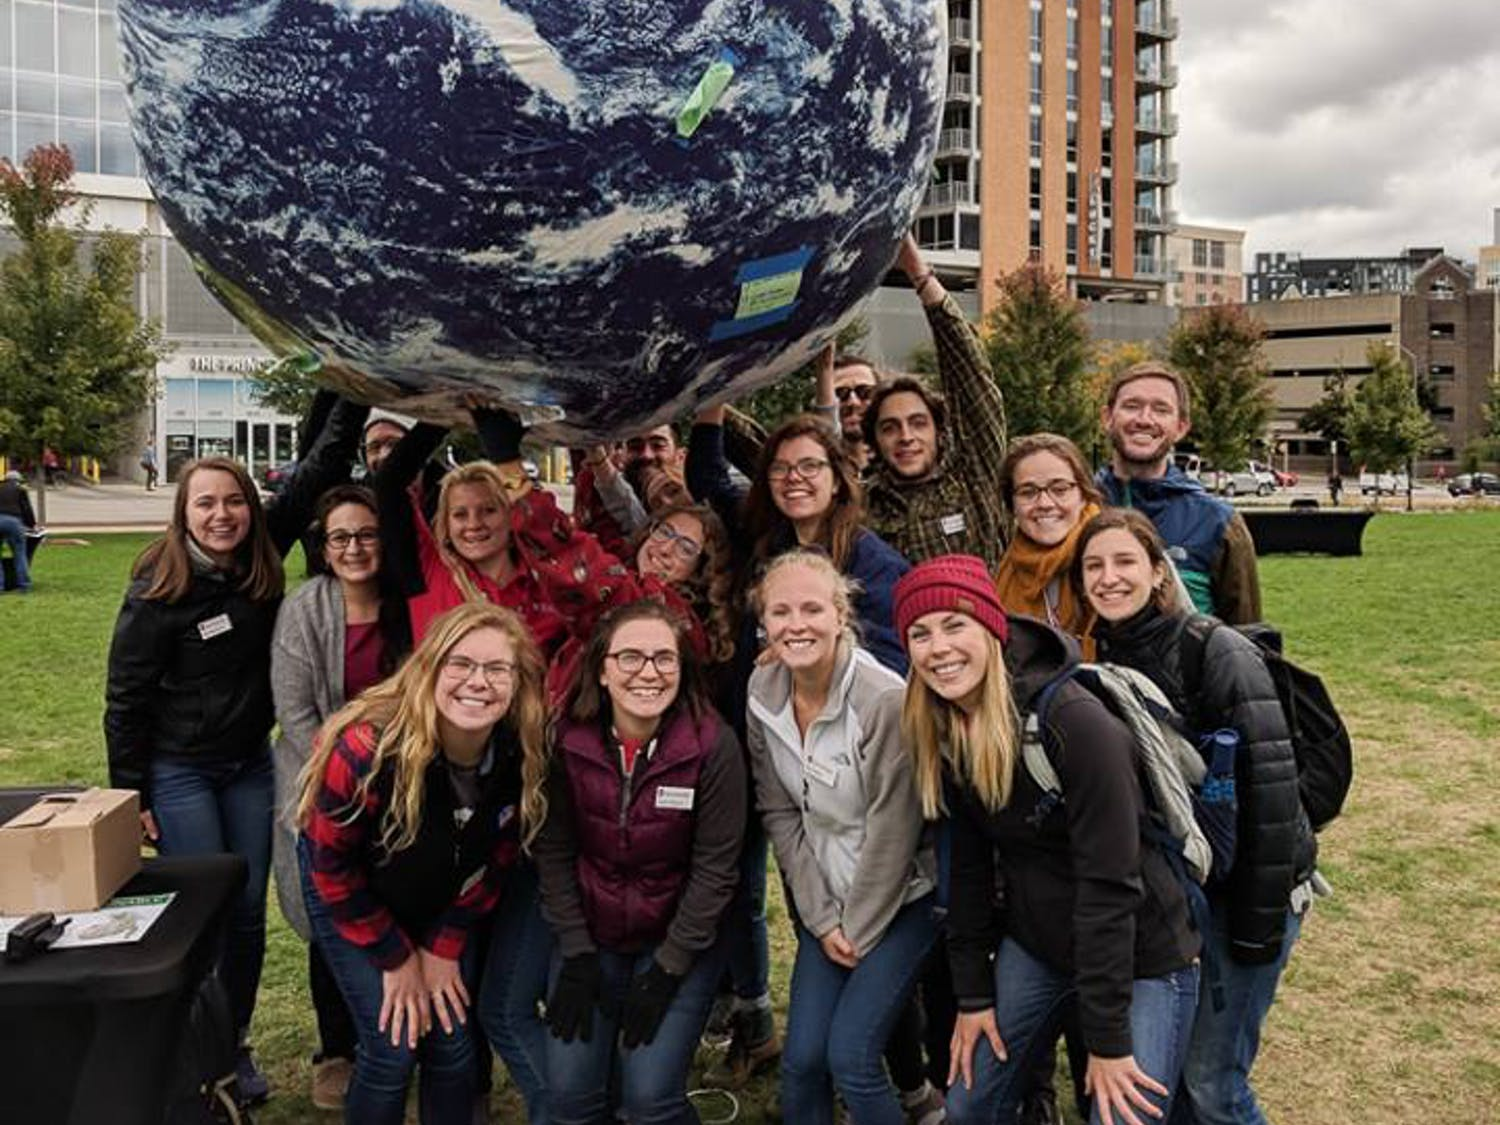 The campus where Earth Day was first celebrated focuses on inclusion and collaboration throughout UW-Madison.